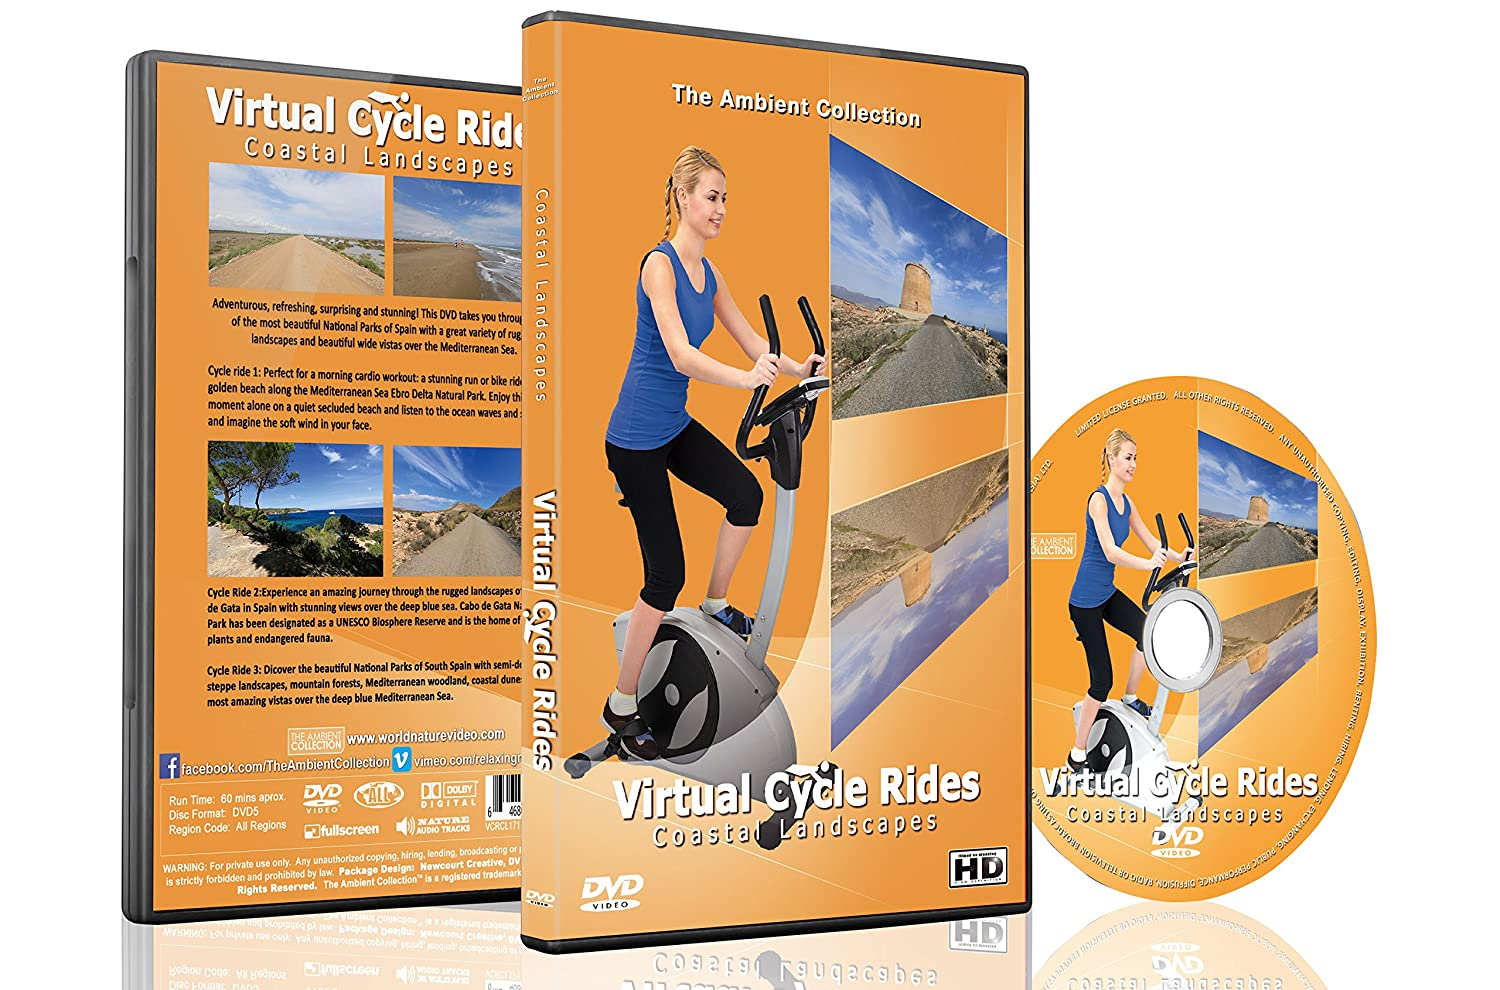 Virtual Cycle Rides - Coastal Landscape - For Indoor Cycling ...